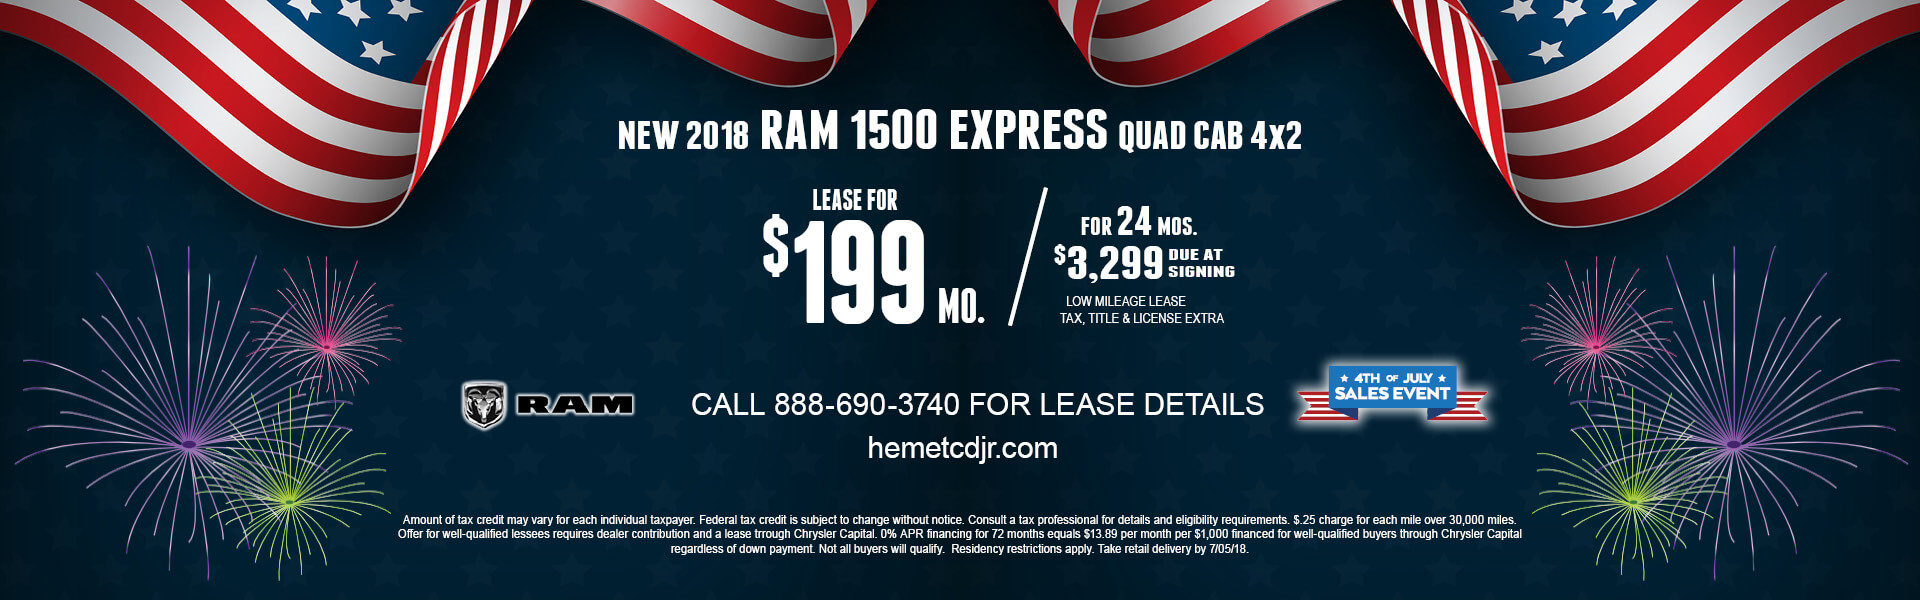 Ram 1500 Express $199 Lease